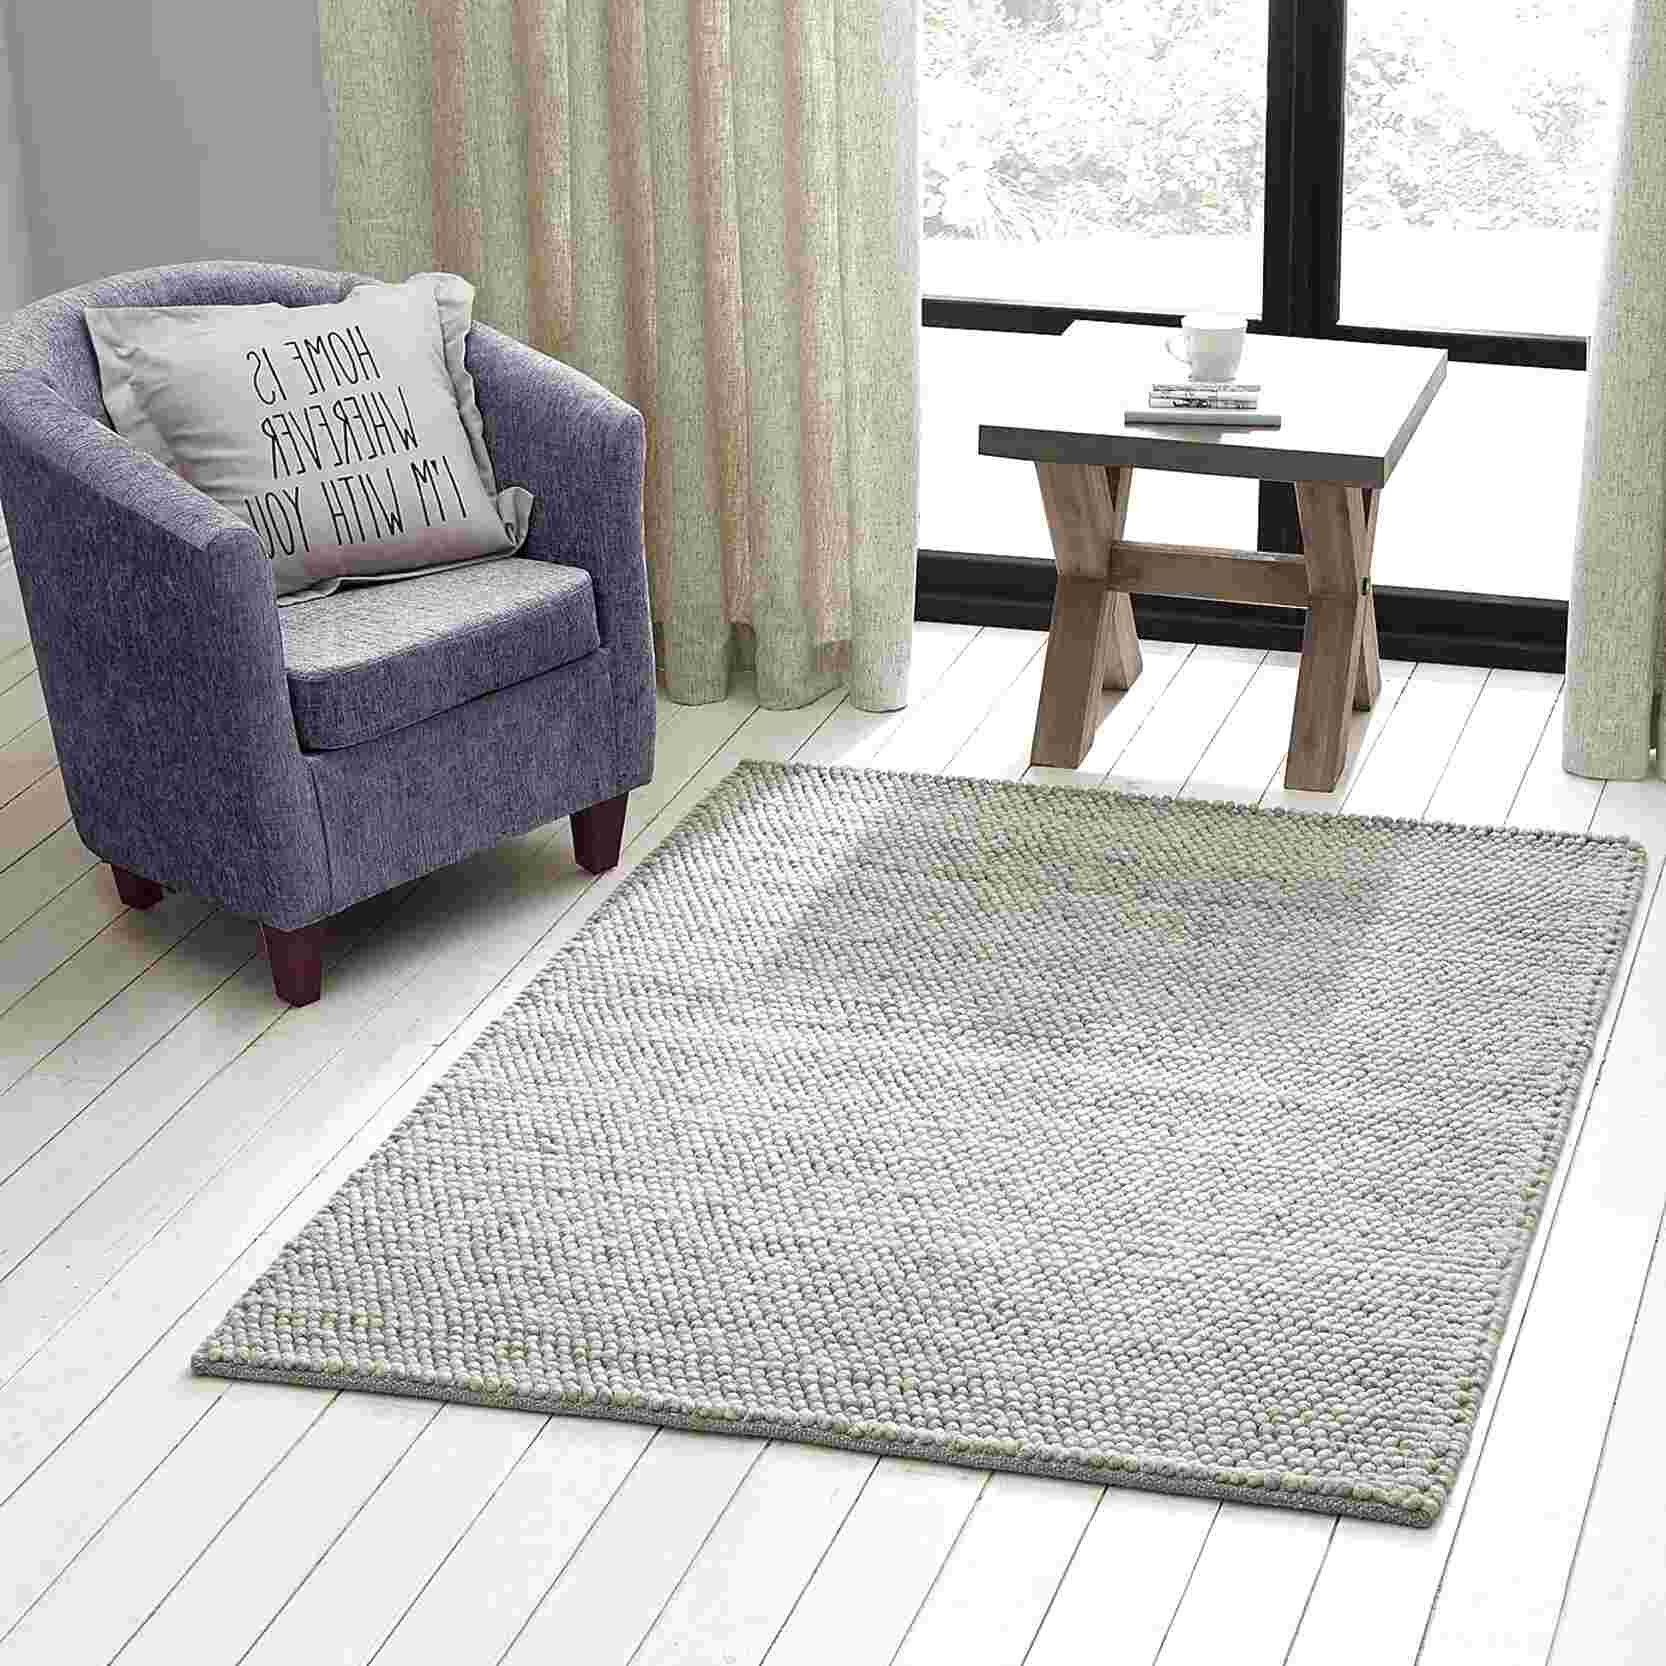 Picture of: Dunelm Rug For Sale In Uk 84 Second Hand Dunelm Rugs